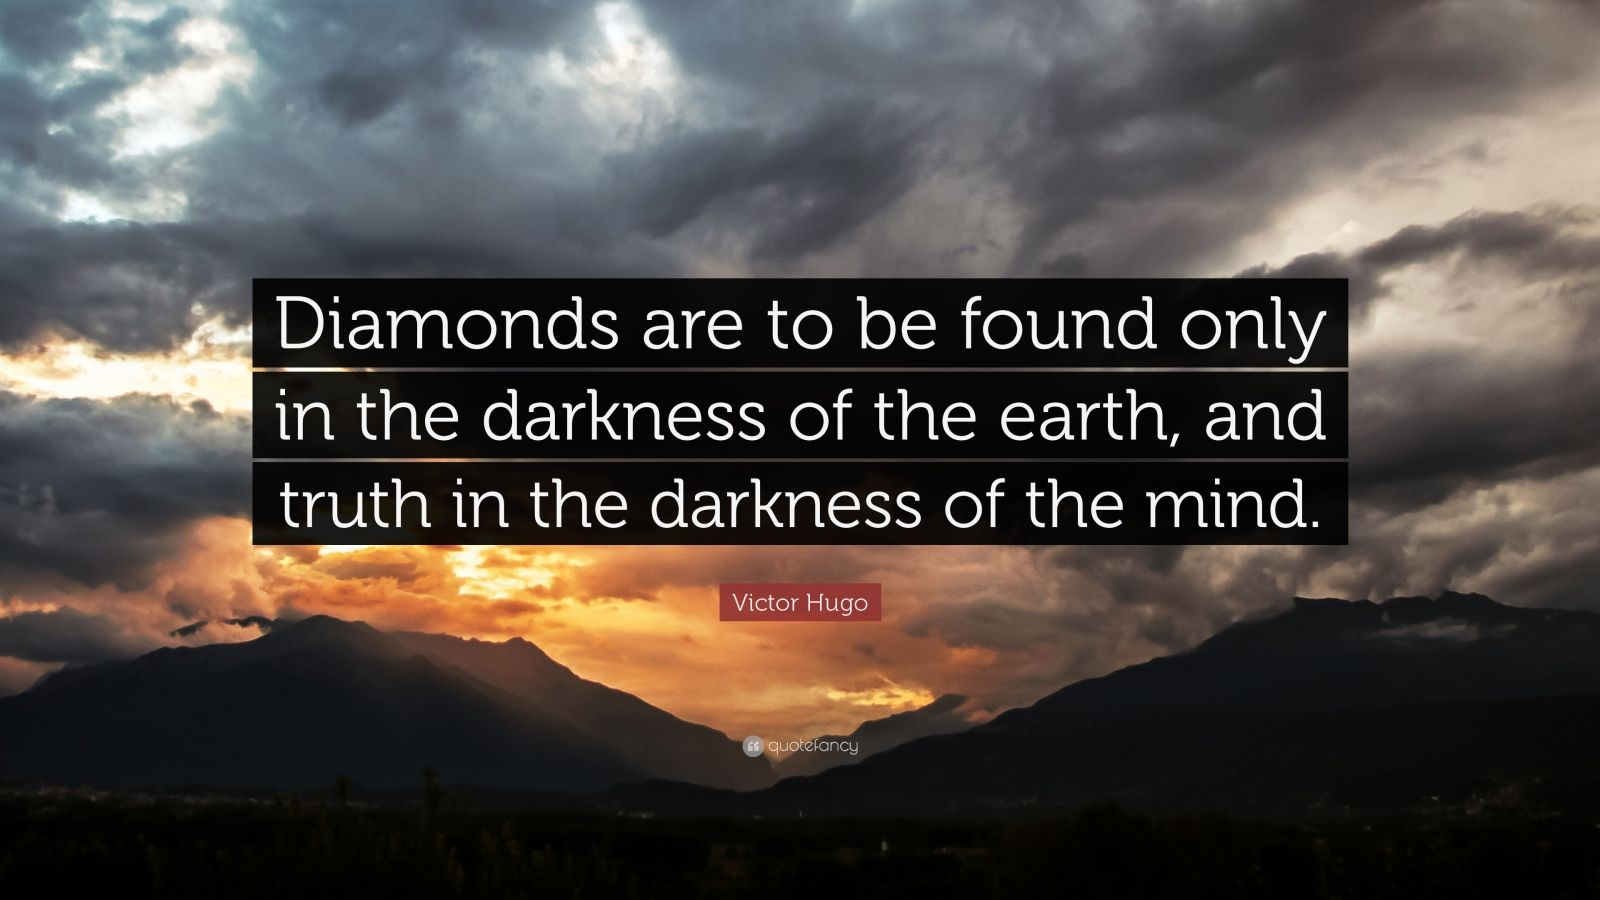 """Victor Hugo Quote: """"Diamonds are to be found only in the darkness of the earth, and truth in the darkness of the mind. """""""